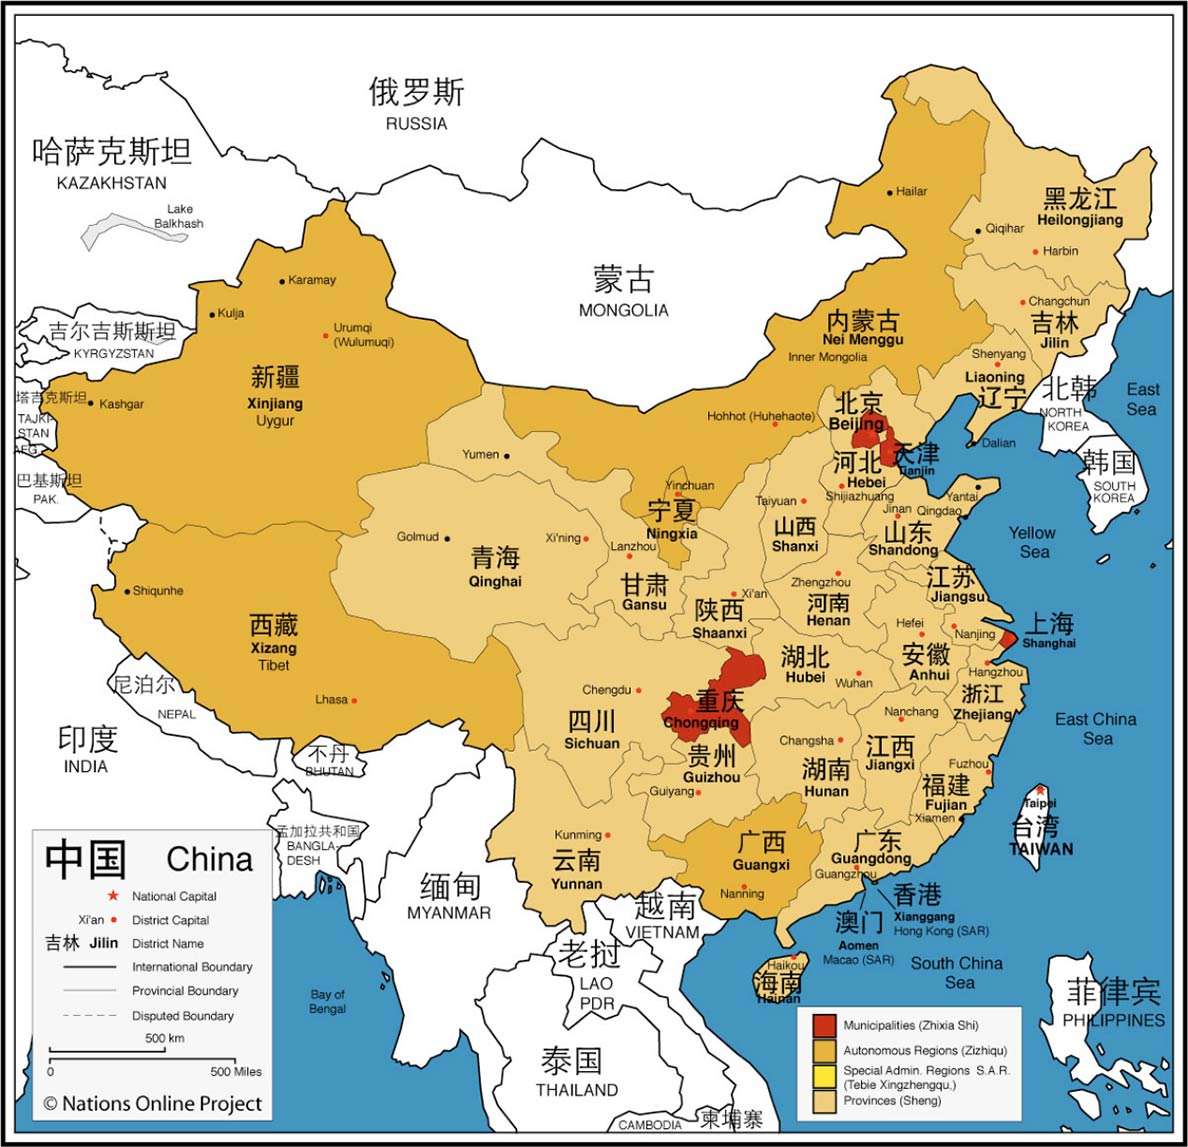 Map of China with Administrative Divisions